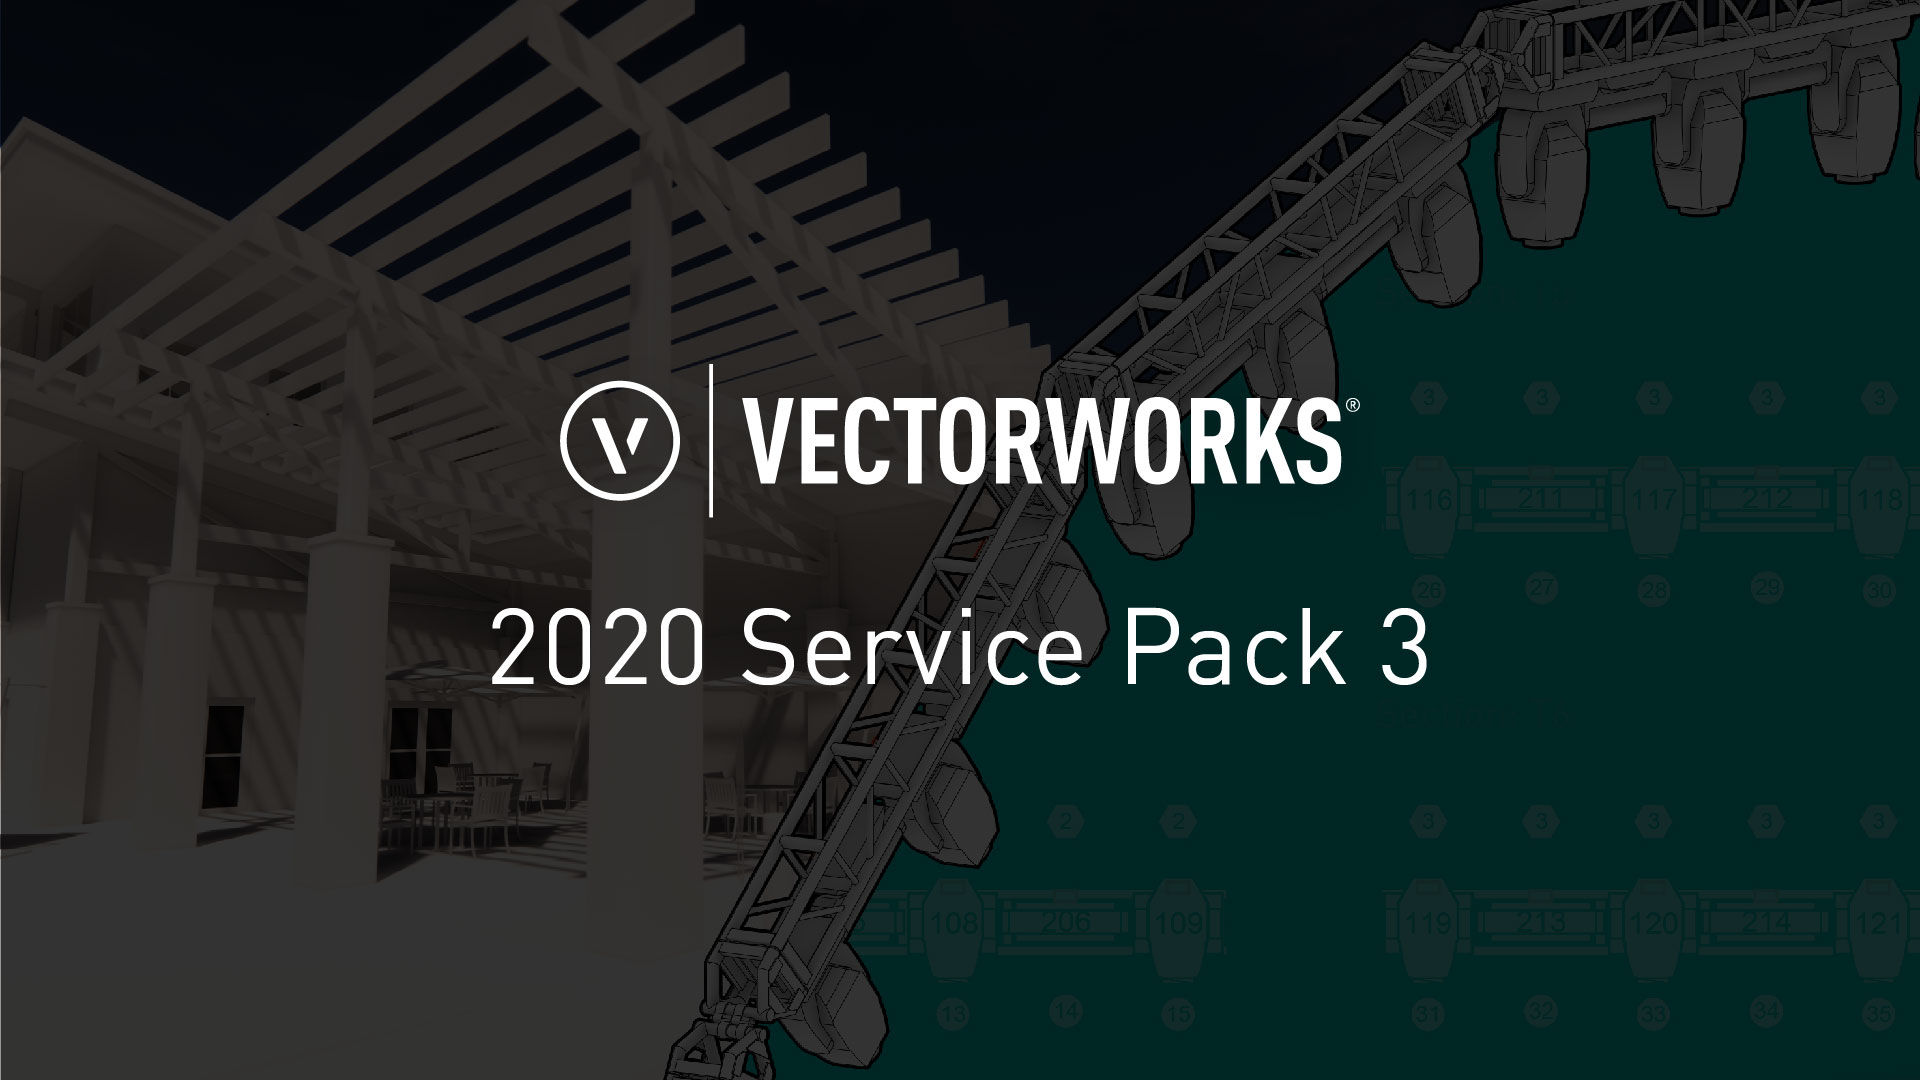 March Tech Roundup: Videos for Vectorworks 2020 Service Pack 3